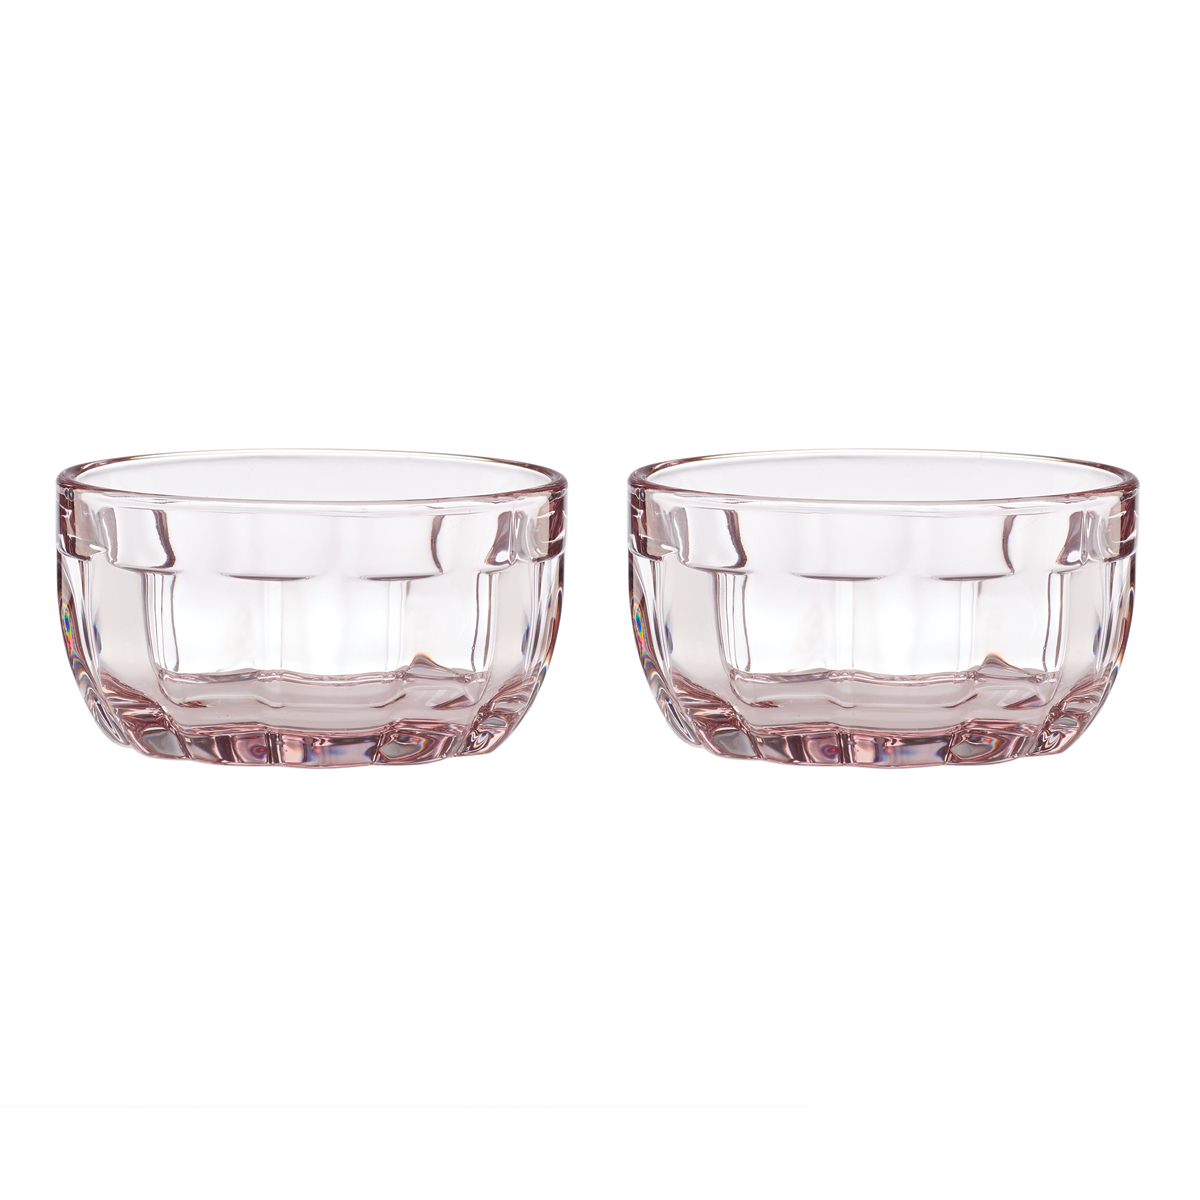 Kate Spade New York, Lenox Park Circle Rose Mini Bowls Pair